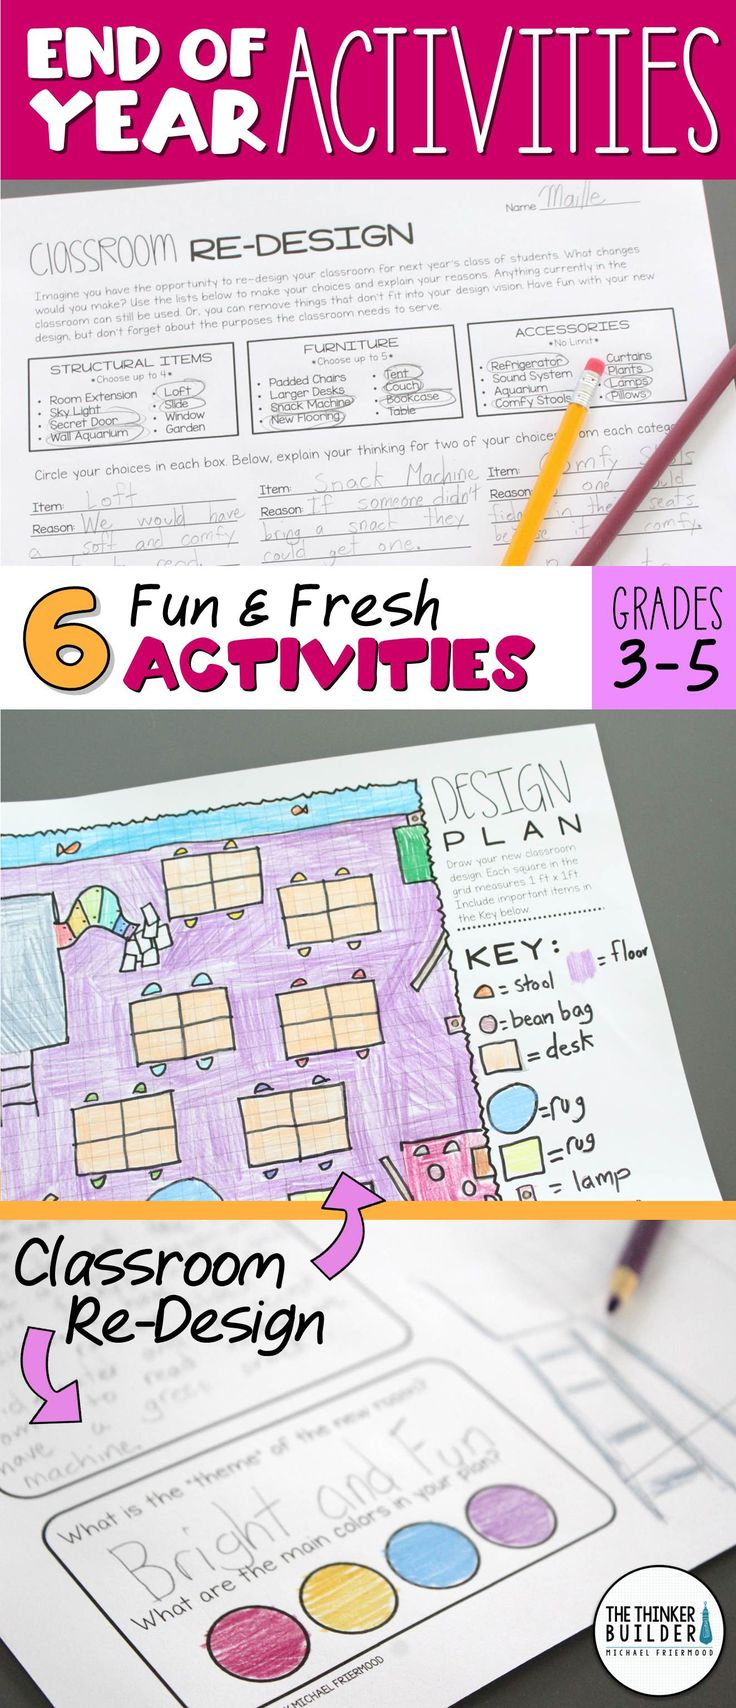 """Fun and fresh End-of-the-Year activities, including a Re-Design the Classroom project, an """"ABCs Scroll"""" for your grade, Inspirational Quote Quilt to encourage next year's class, End of the Year Newscast, and more! For Grades 3-5 ($) Or bundle with my first pack HERE >> https://www.teacherspayteachers.com/Product/BUNDLE-End-of-the-Year-Activities-Fun-Fresh-2-Packs-2527205"""